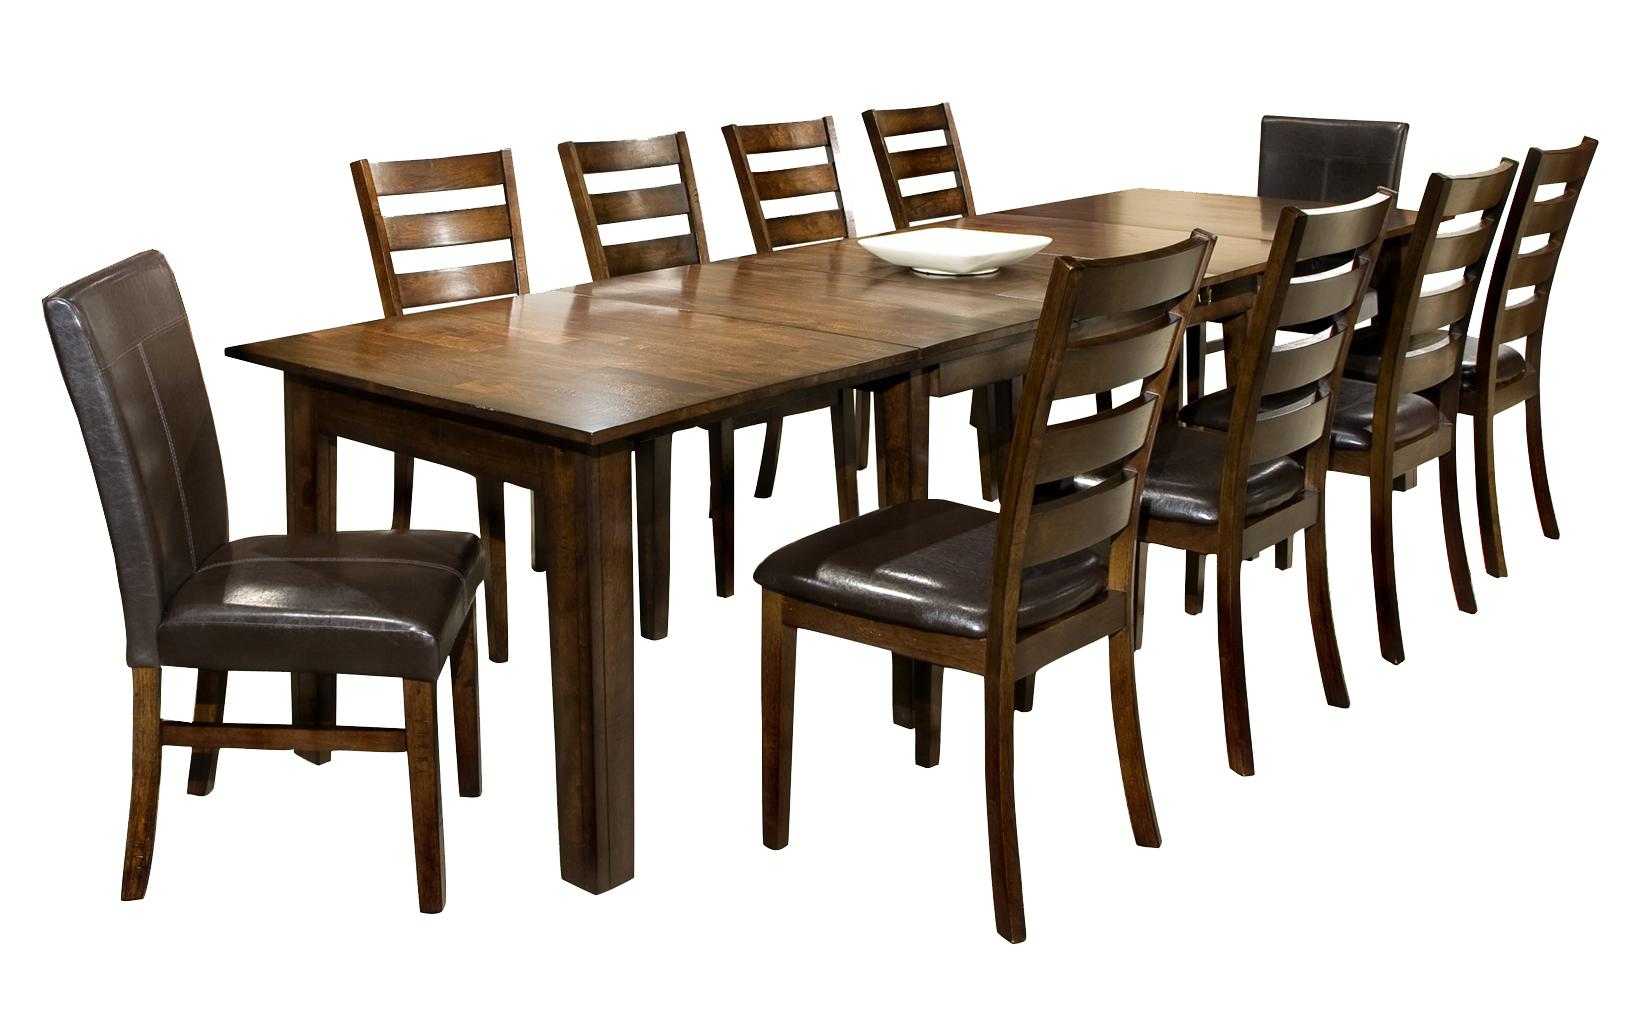 11 piece dining set with table and chairs by intercon For11 Piece Dining Table Set